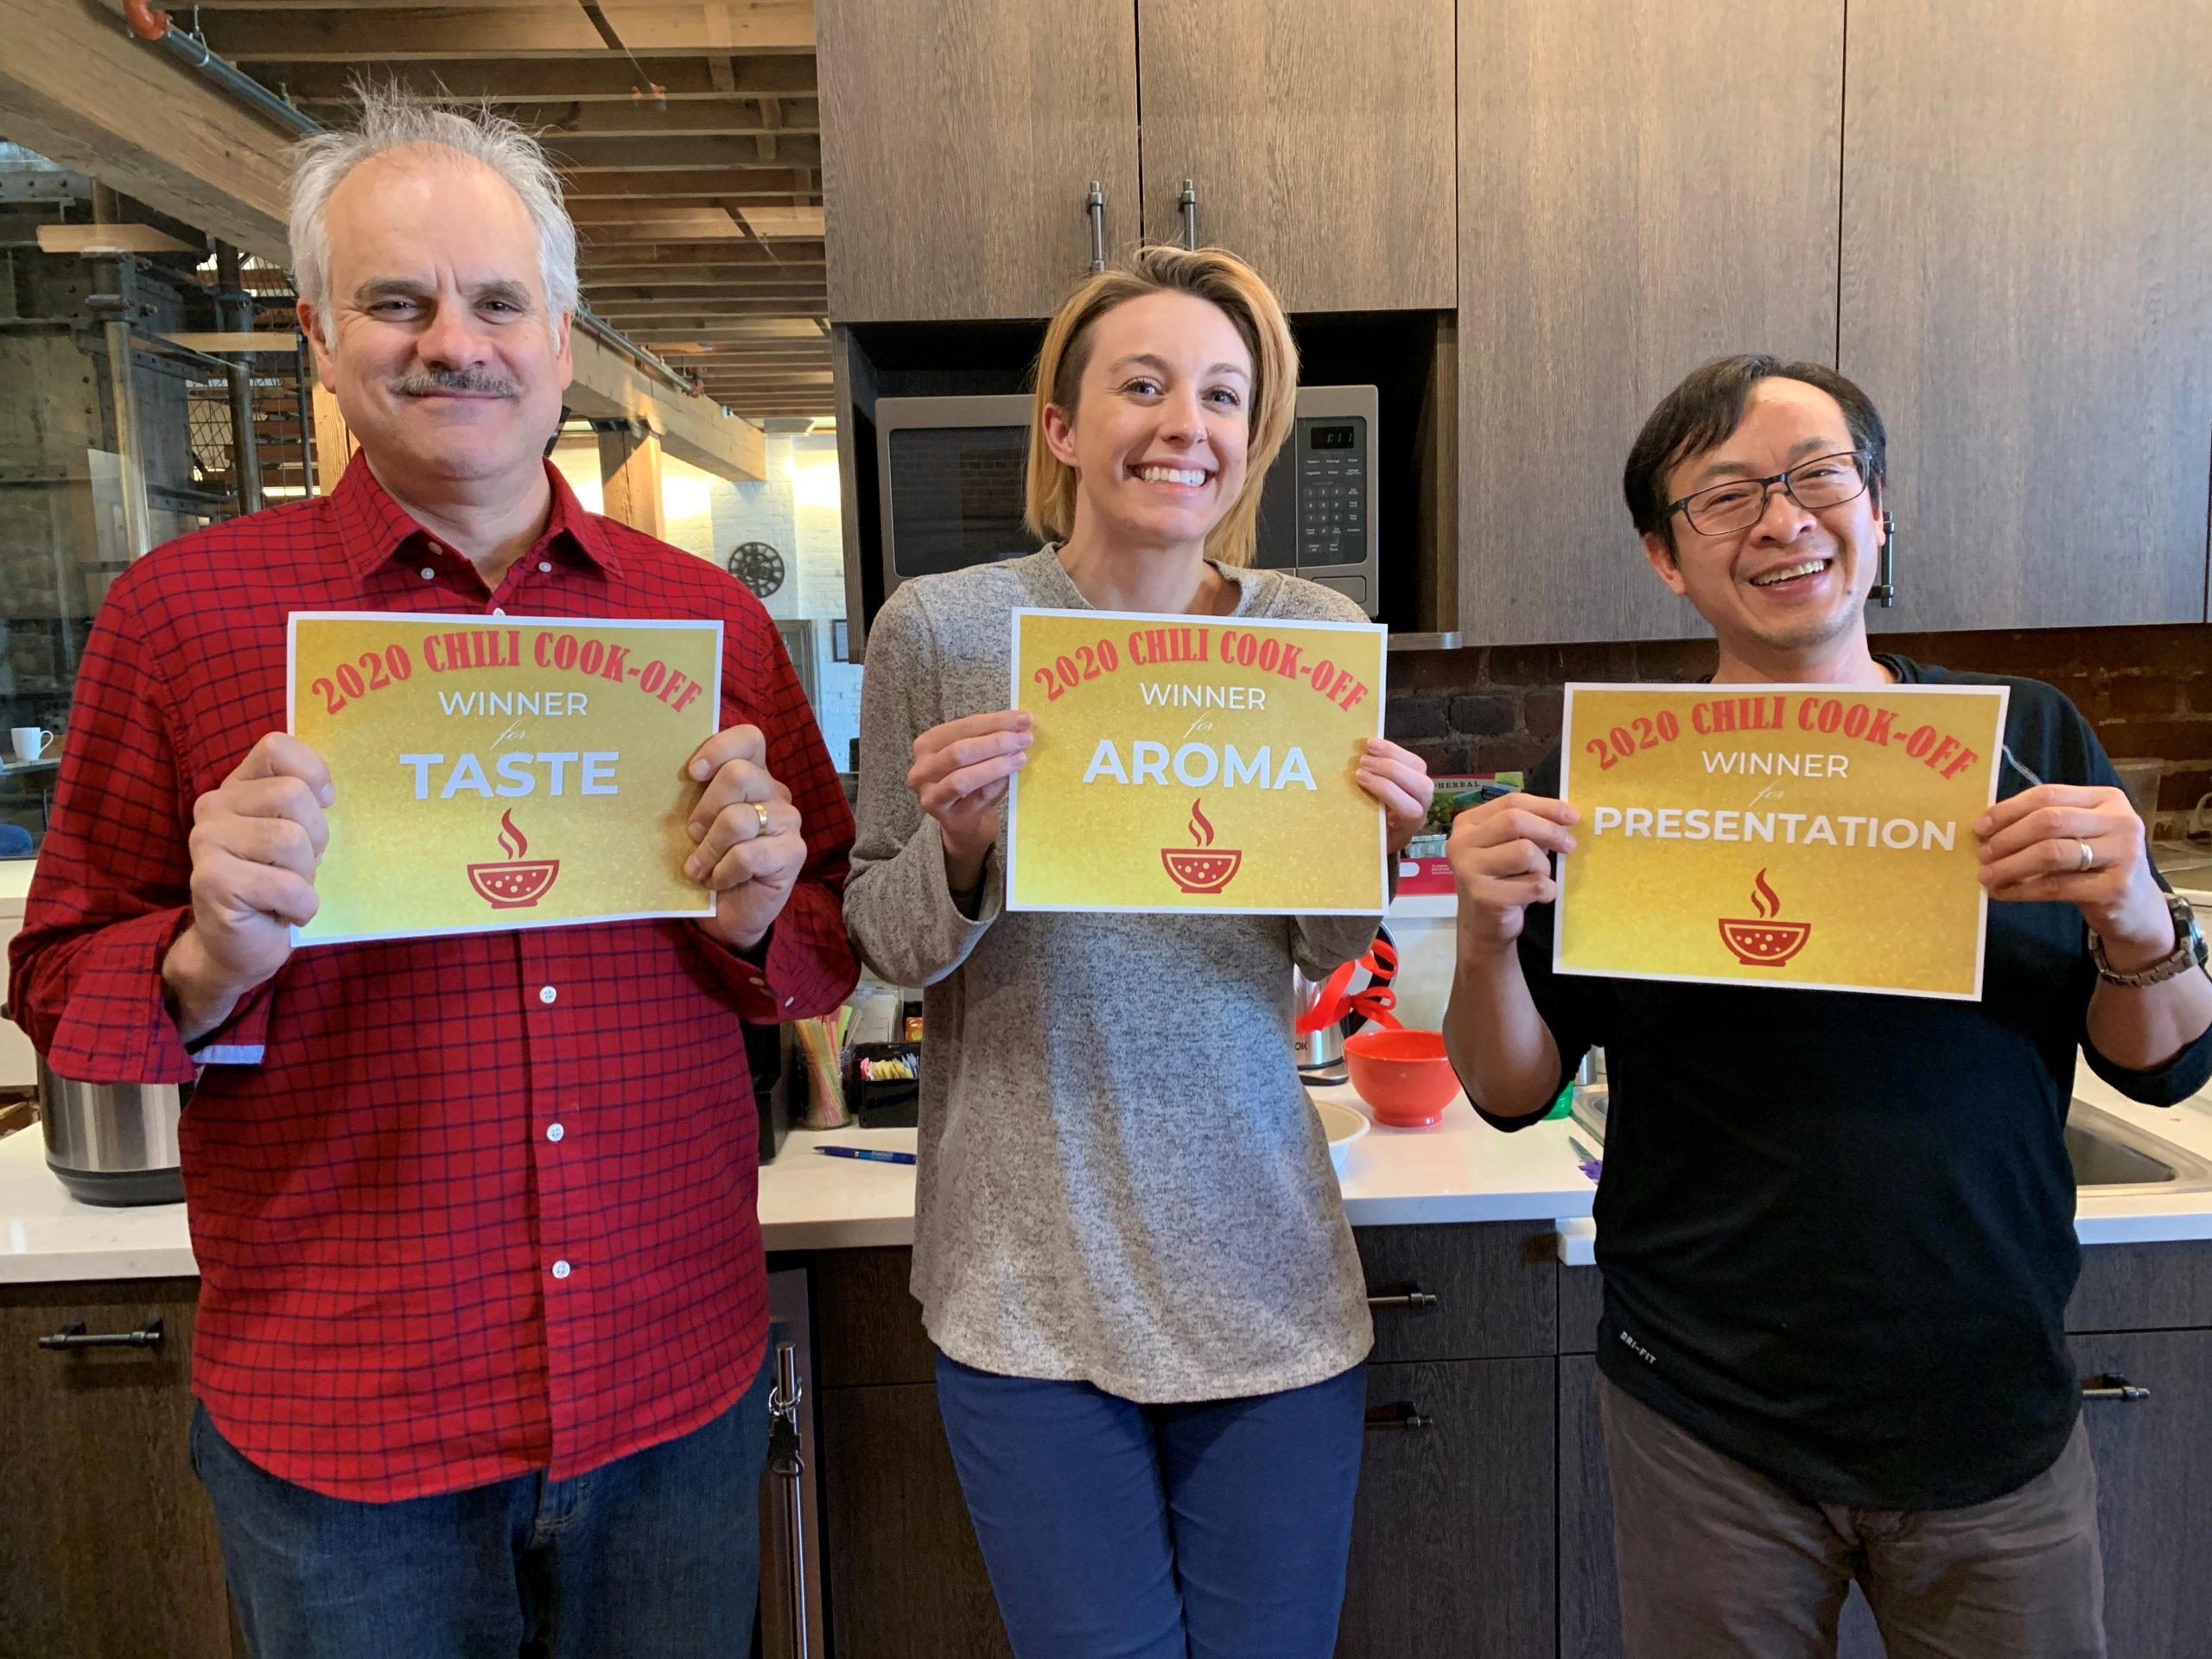 Winner of the 2020 chili cook-off